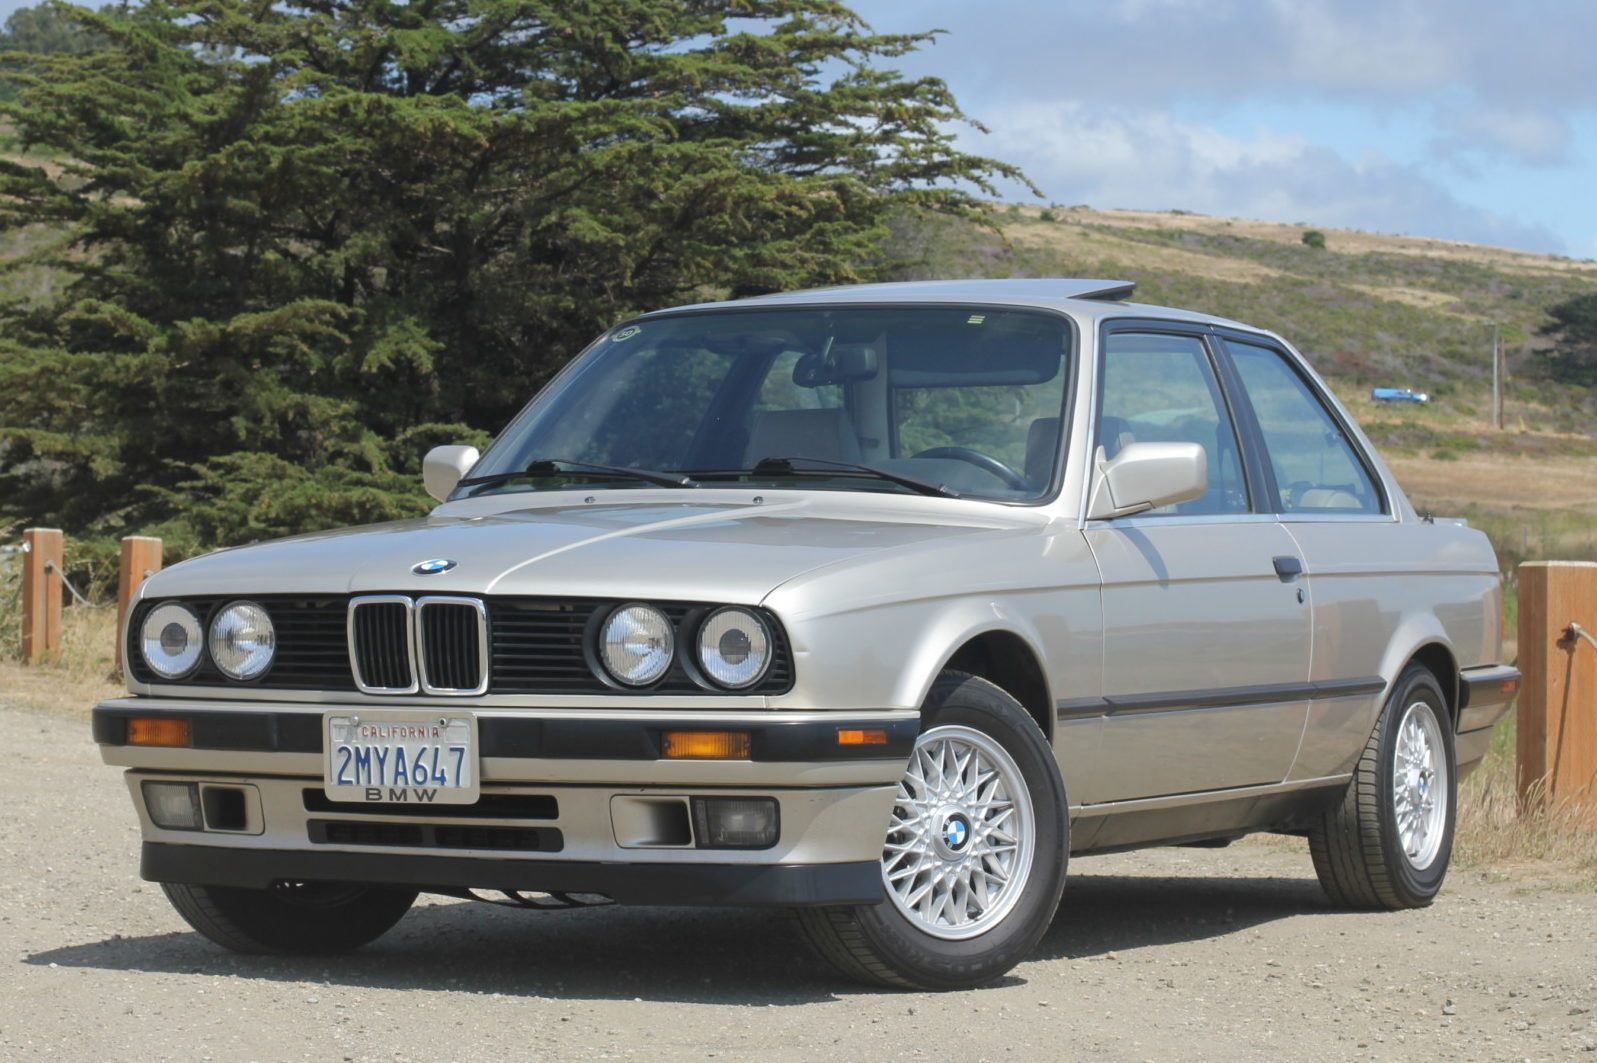 1989 Bmw 325is 5 Speed Bmw Classic Cars Online Limited Slip Differential